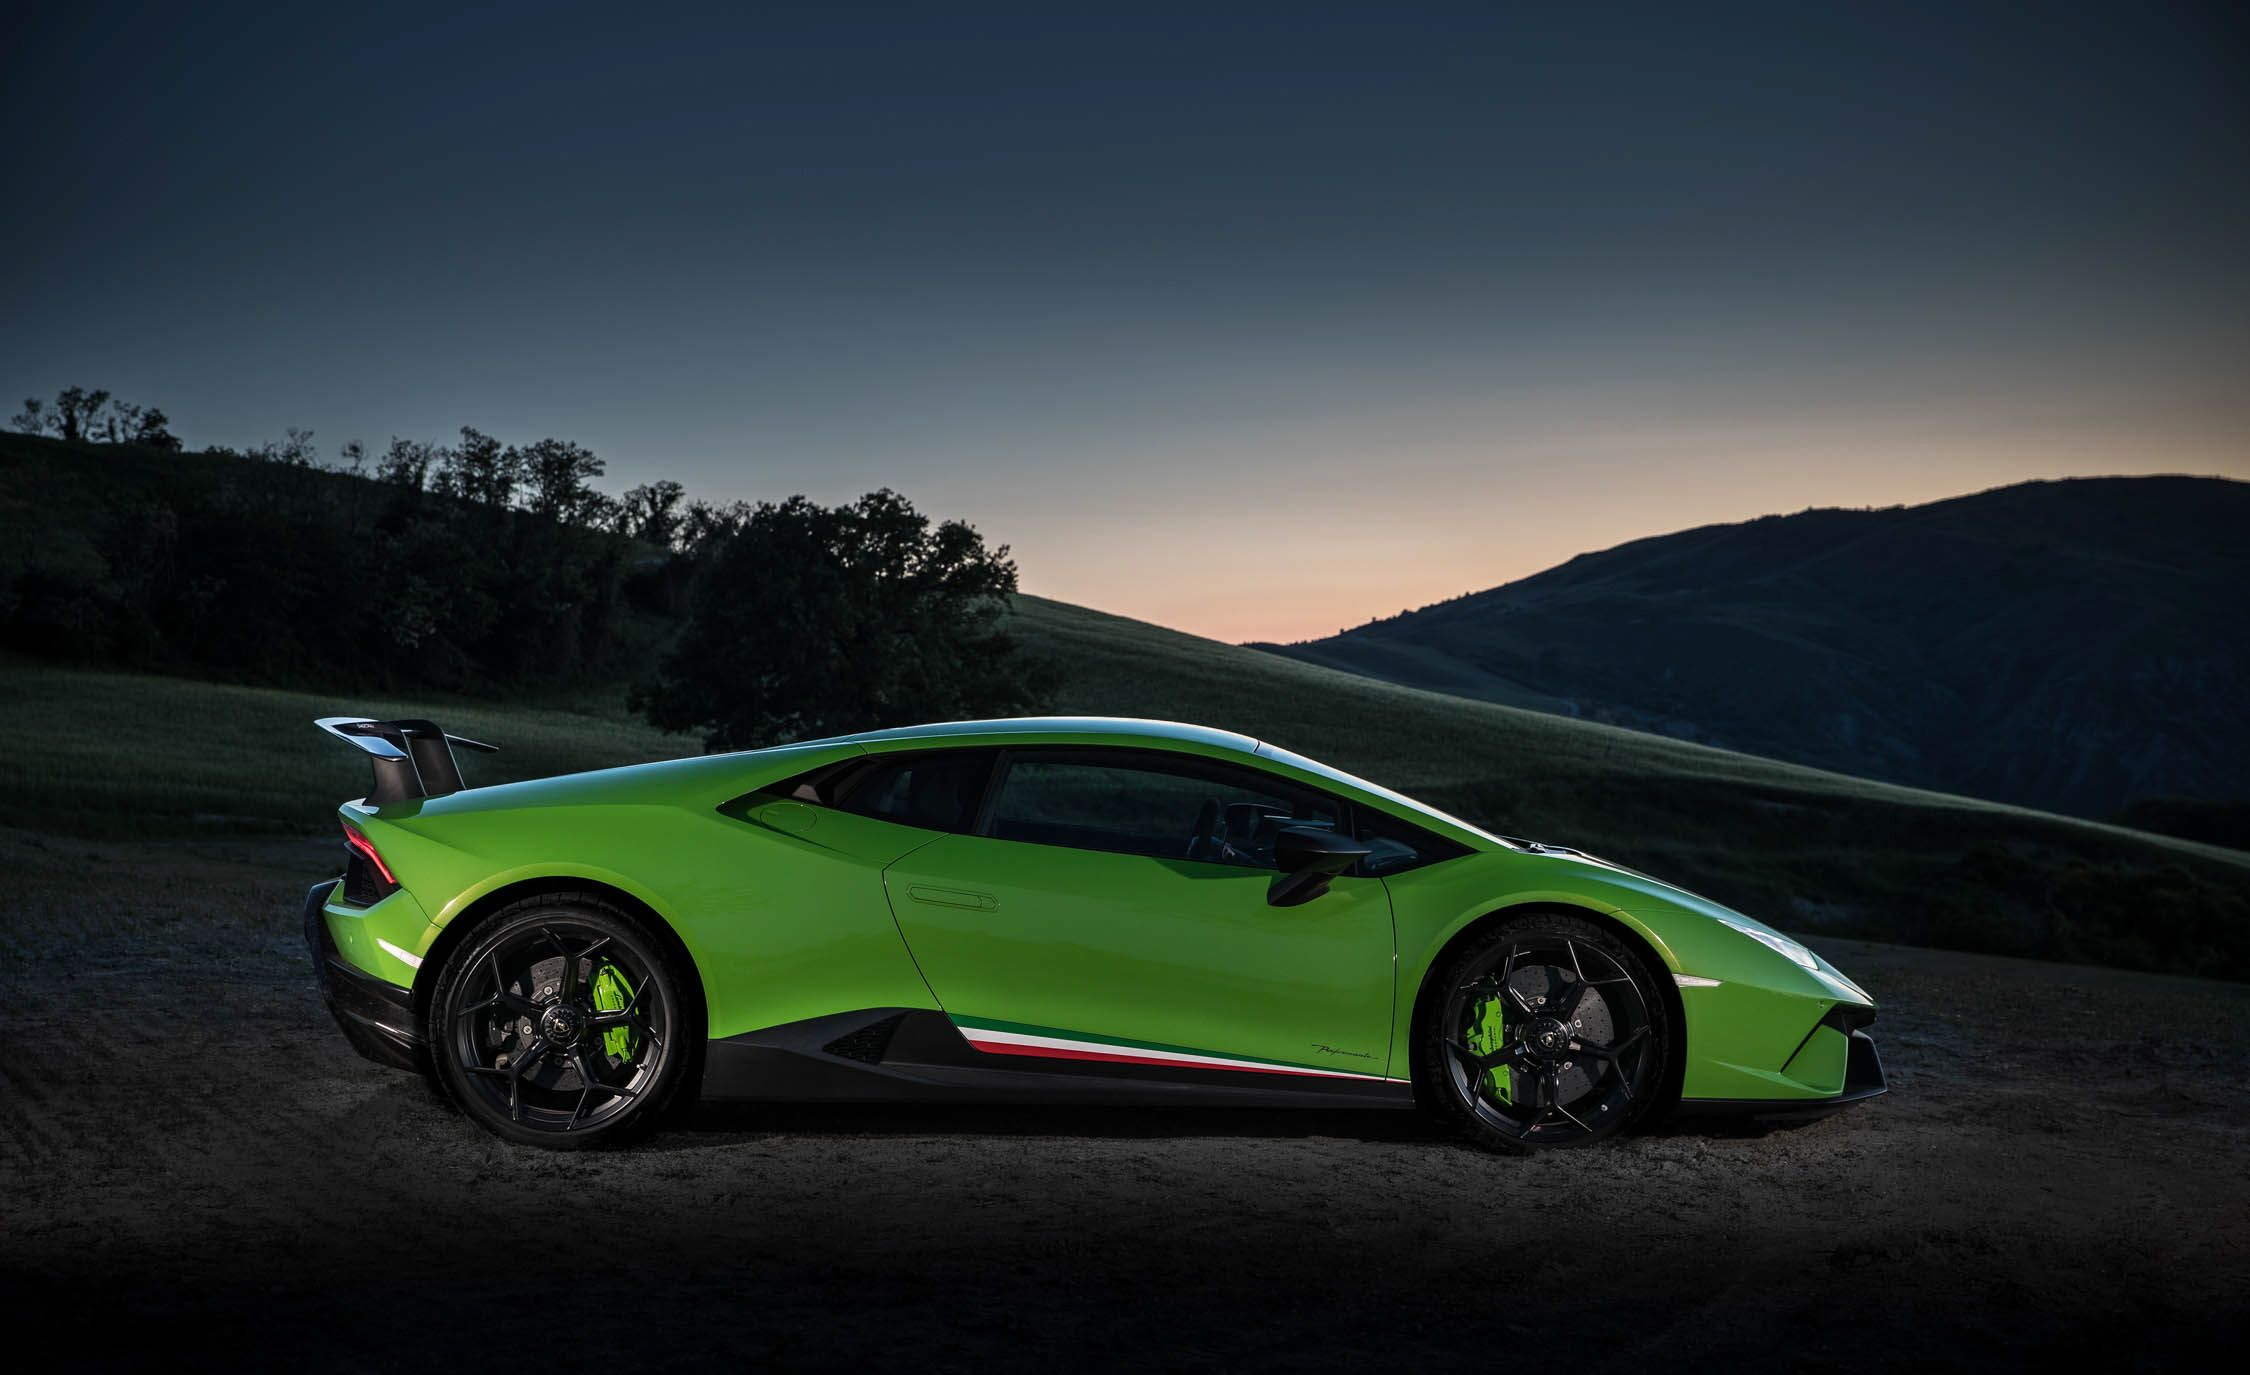 huracan sale prices on cars lamborghini used jamesedition for